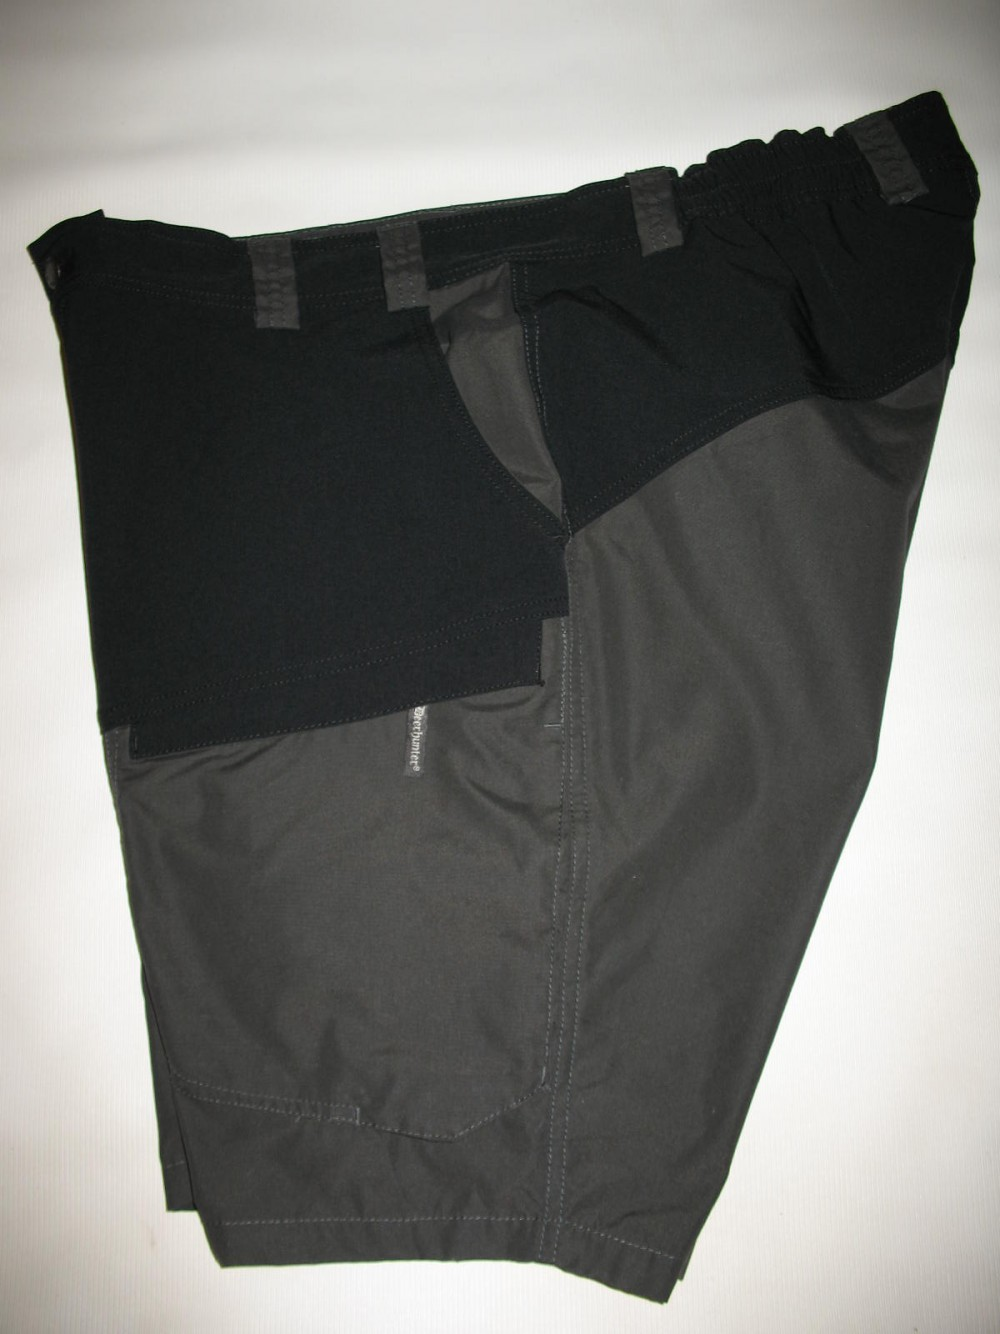 Шорты DEERHUNTER strike shorts (размер 60-XXL/XXXL) - 6